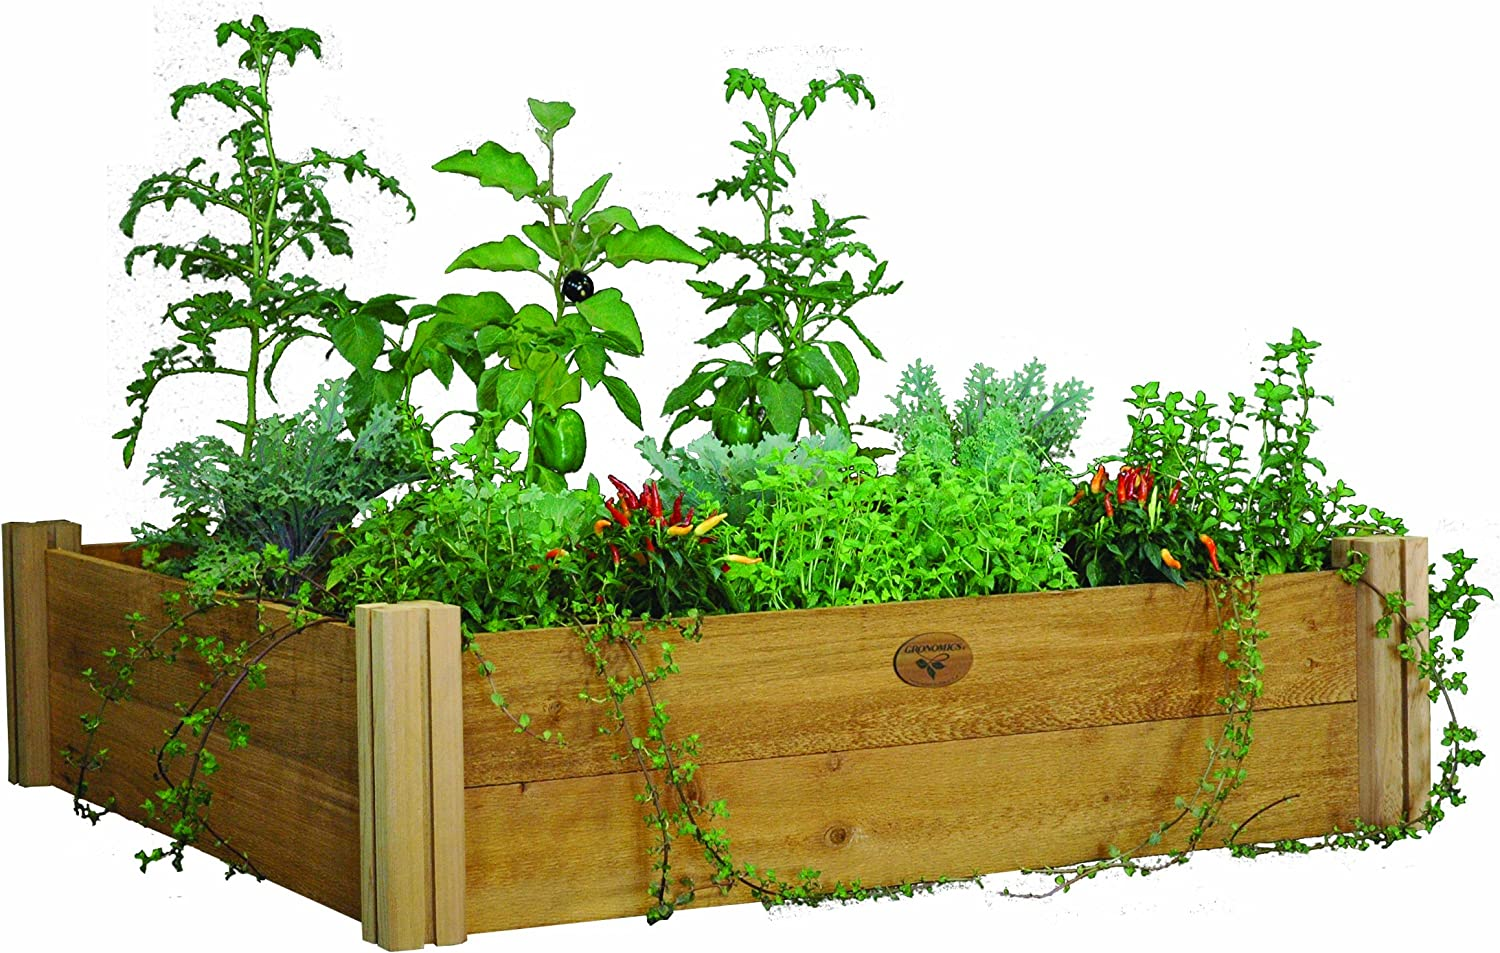 Gronomics MRGB-2L 48-48 48-Inch by 48-Inch by 13-Inch Modular Raised Garden Bed, Unfinished